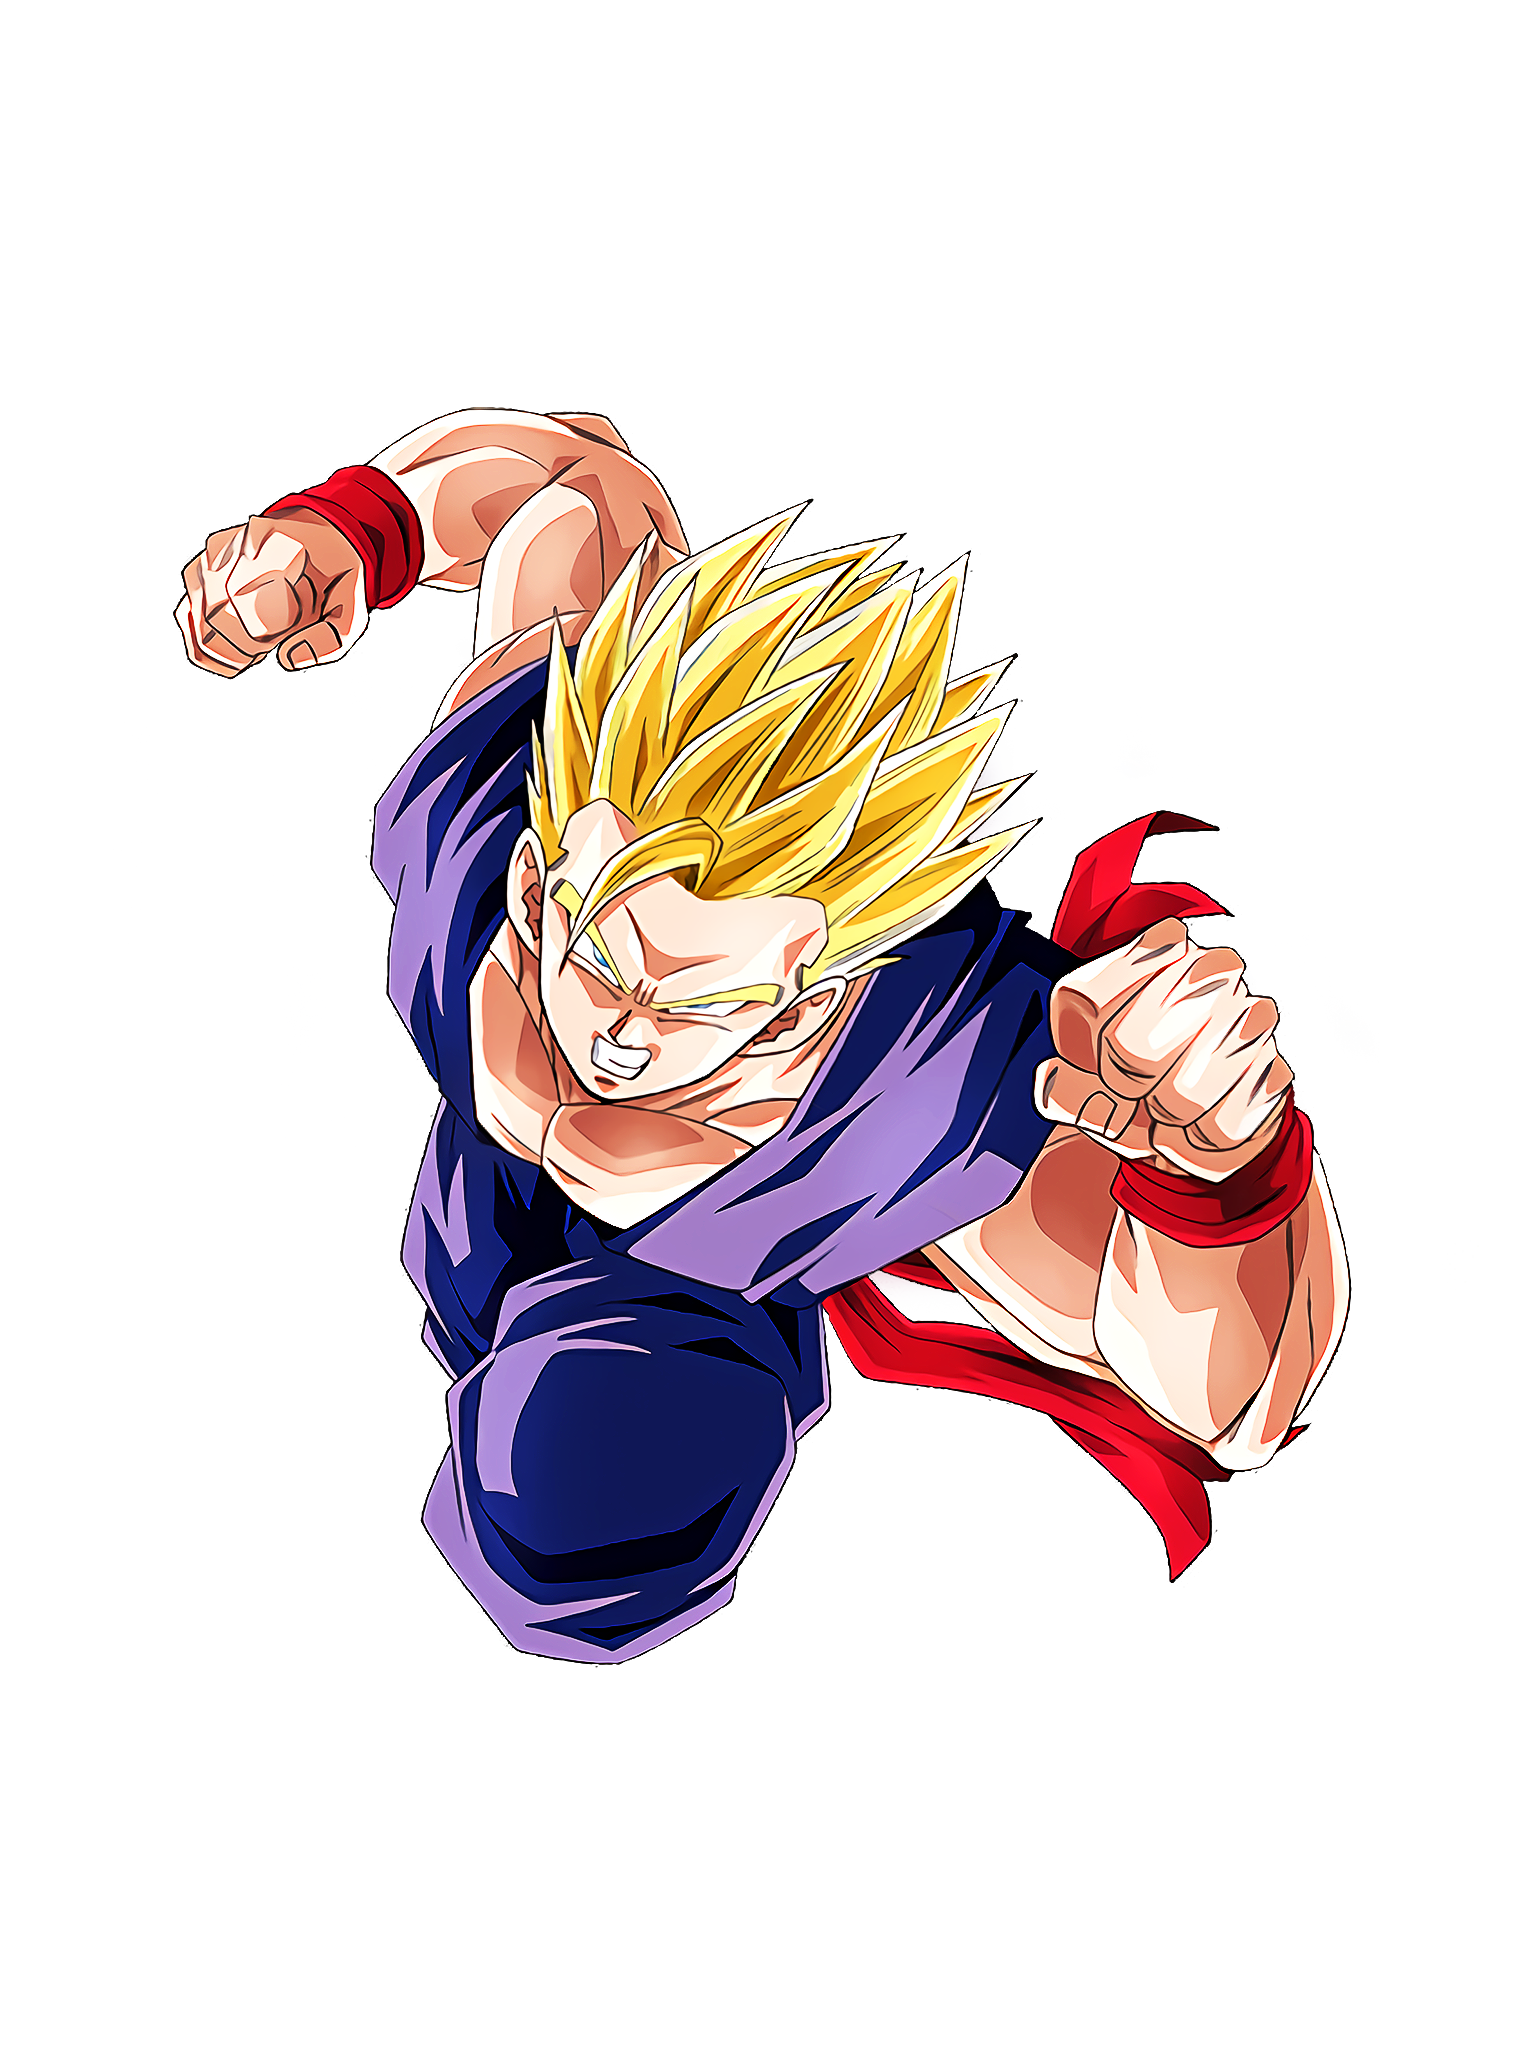 Vanguard Warrior's True Value Super Saiyan 2 Gohan Teen Render (Dragon Ball Z Dokkan Battle) .png